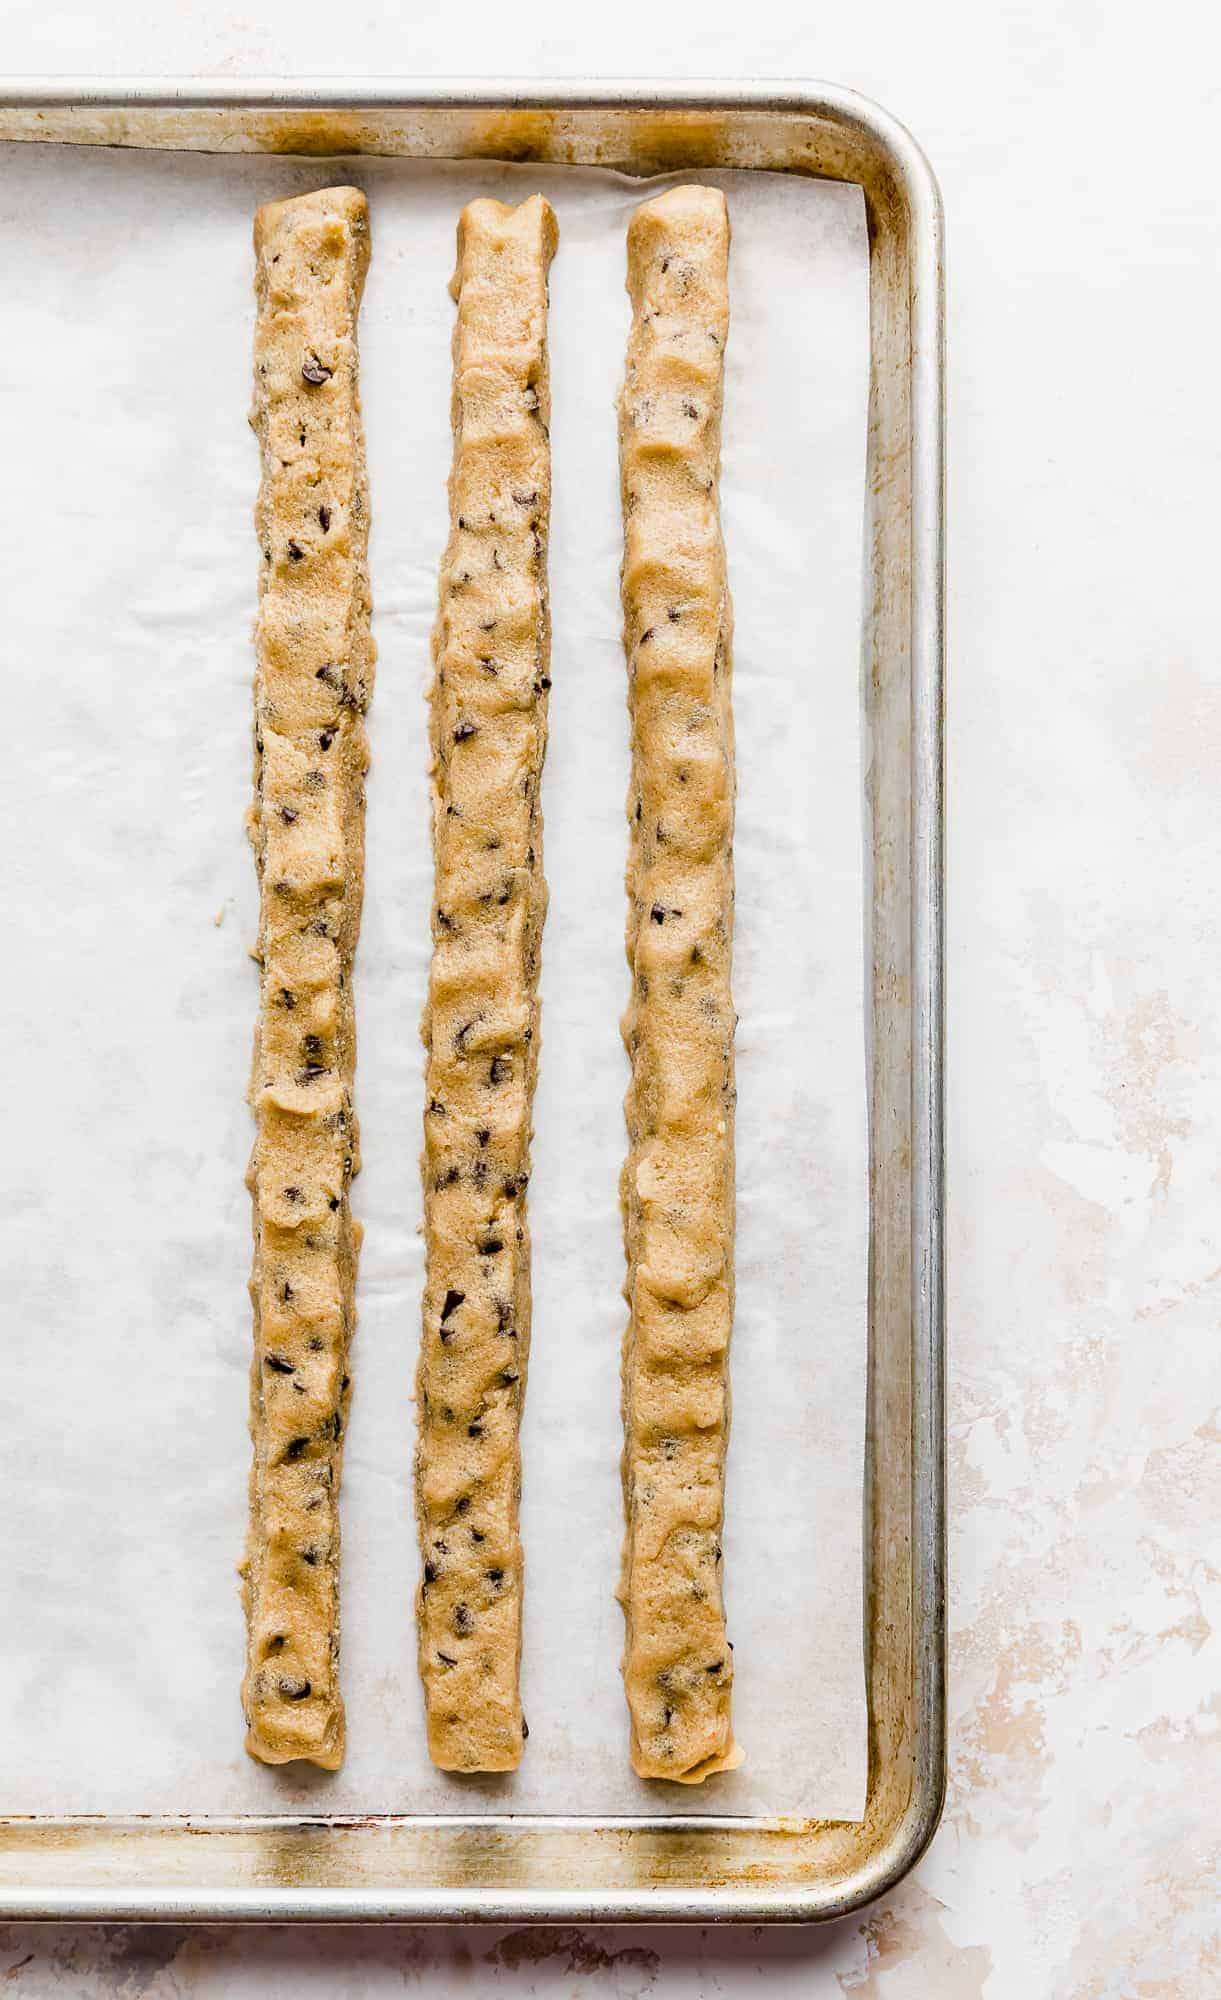 3 ropes of edible cookie dough on a baking sheet against a white background.